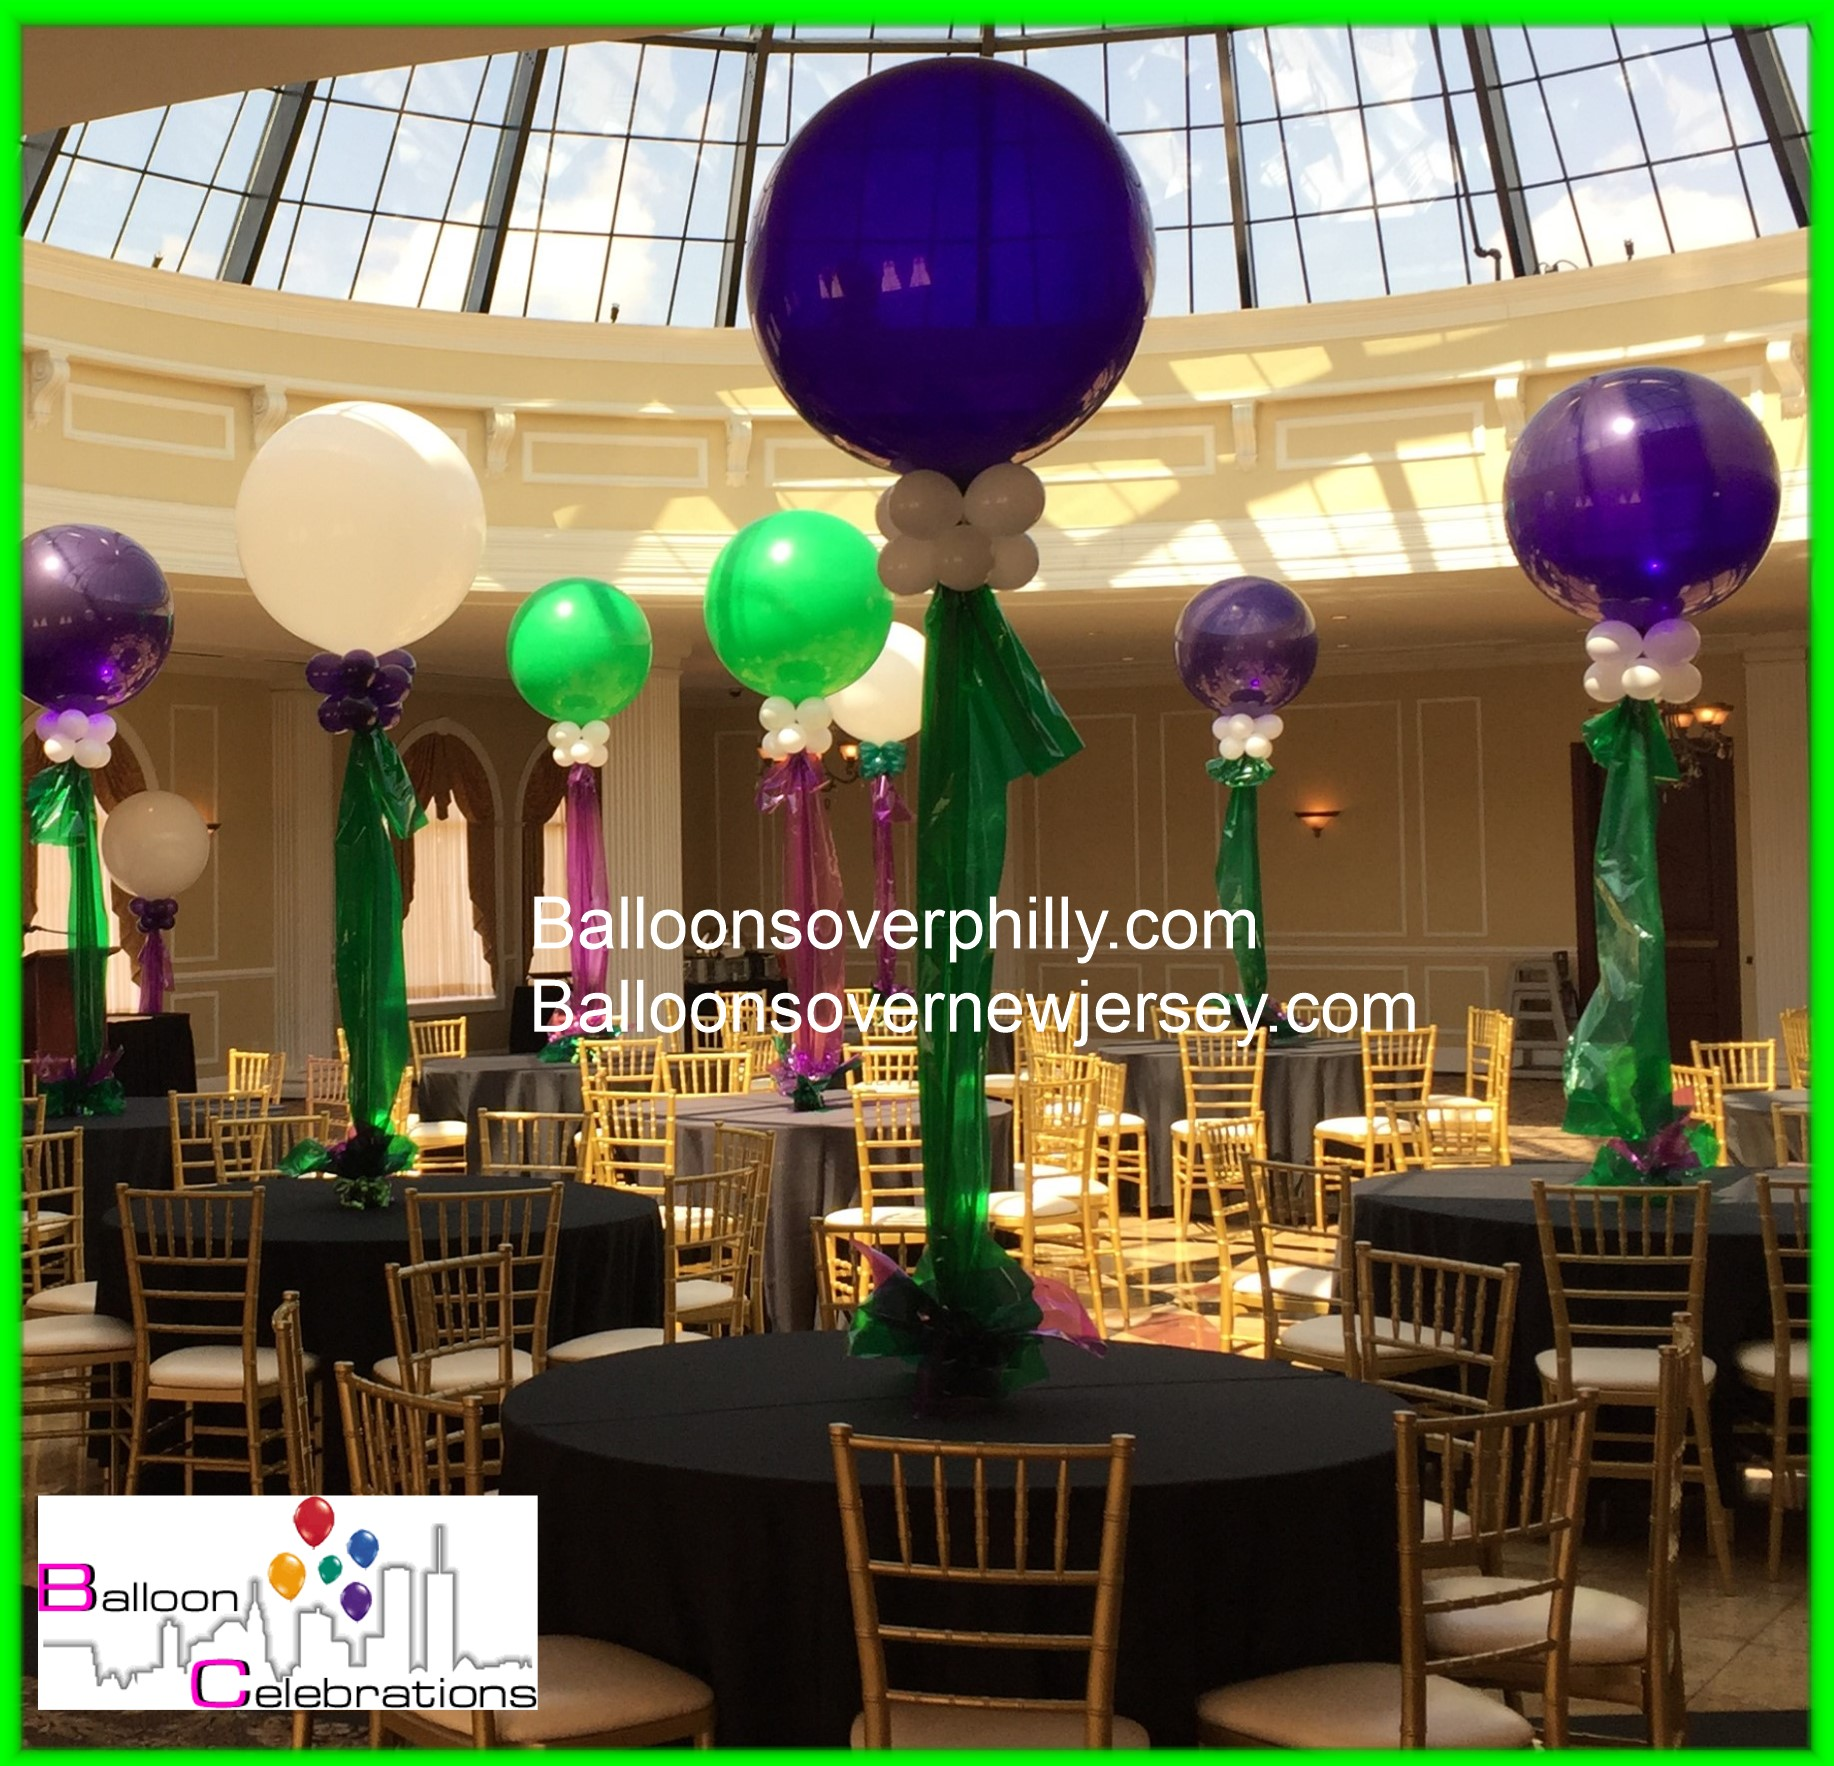 Big balloon centerpieces